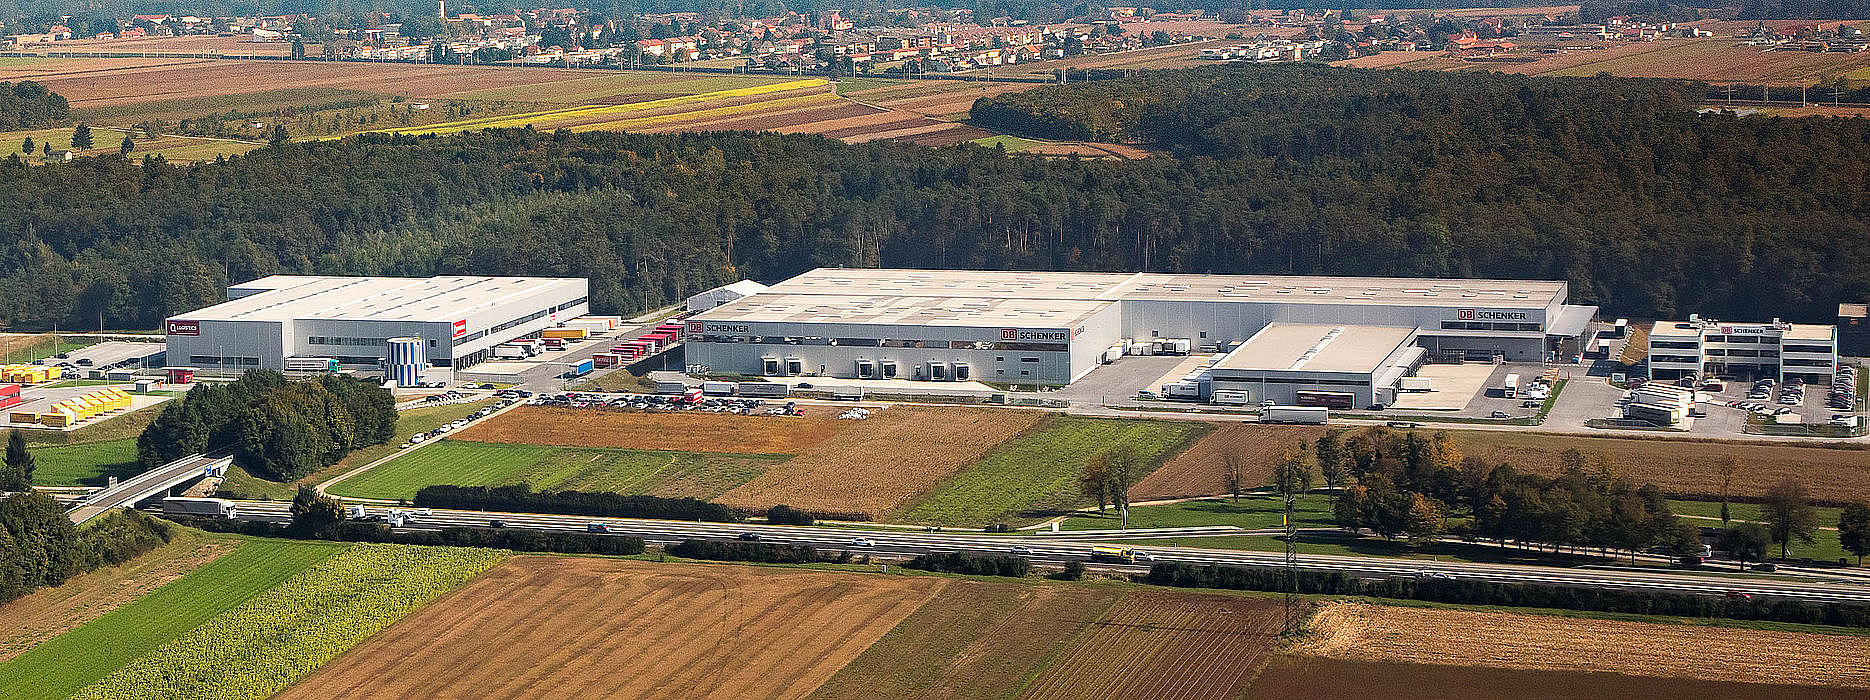 Logistikzentrum in Wundschuh